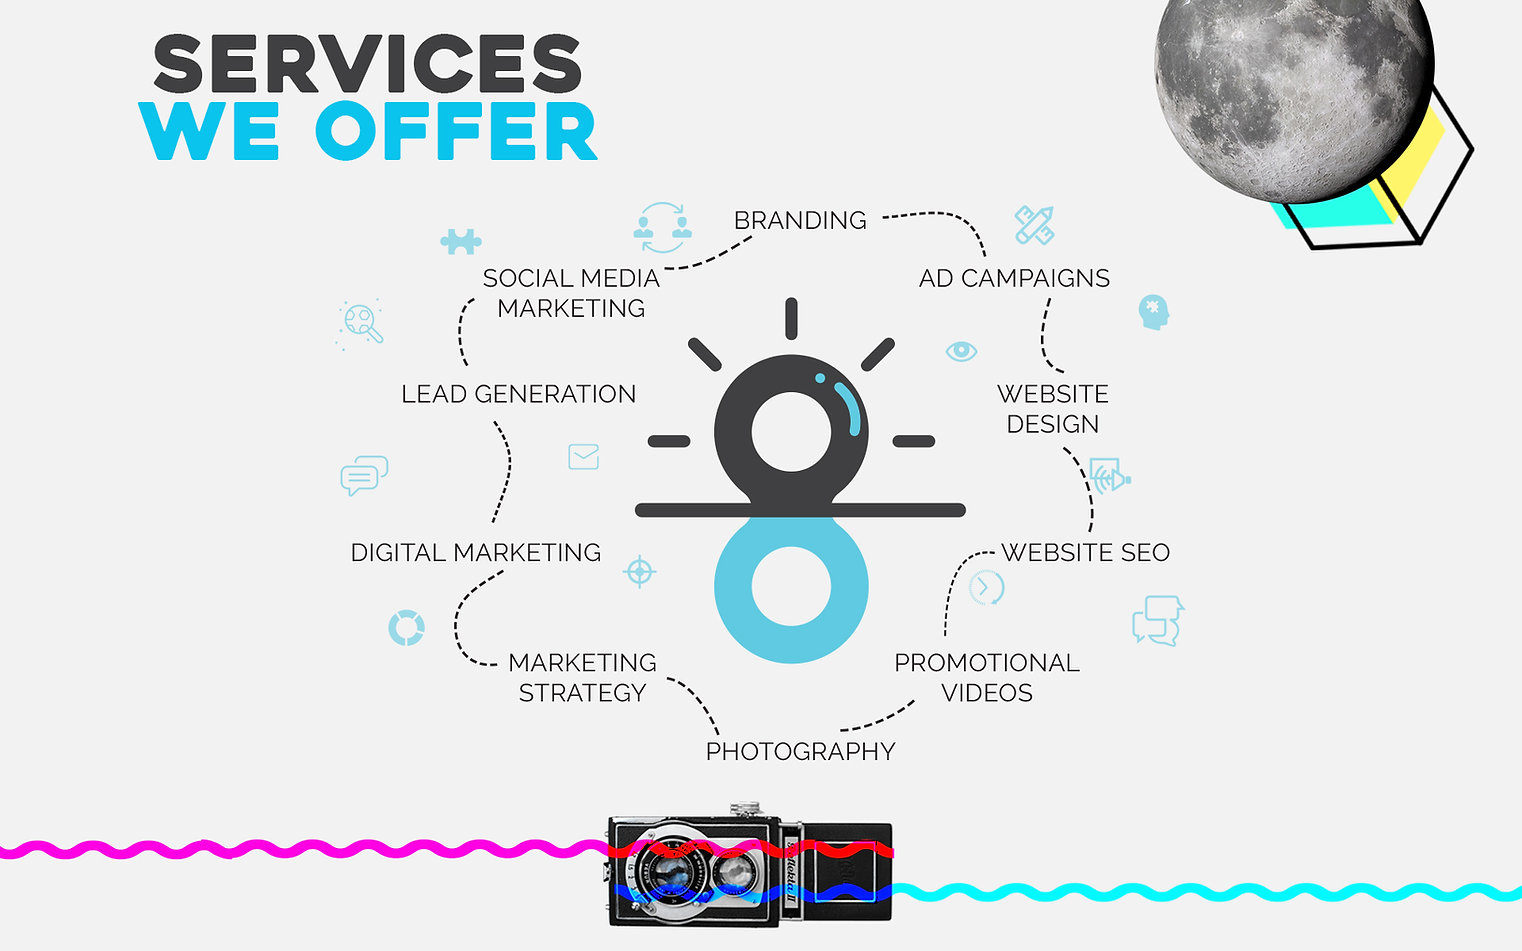 Services we offer_1920x1200 01.jpg